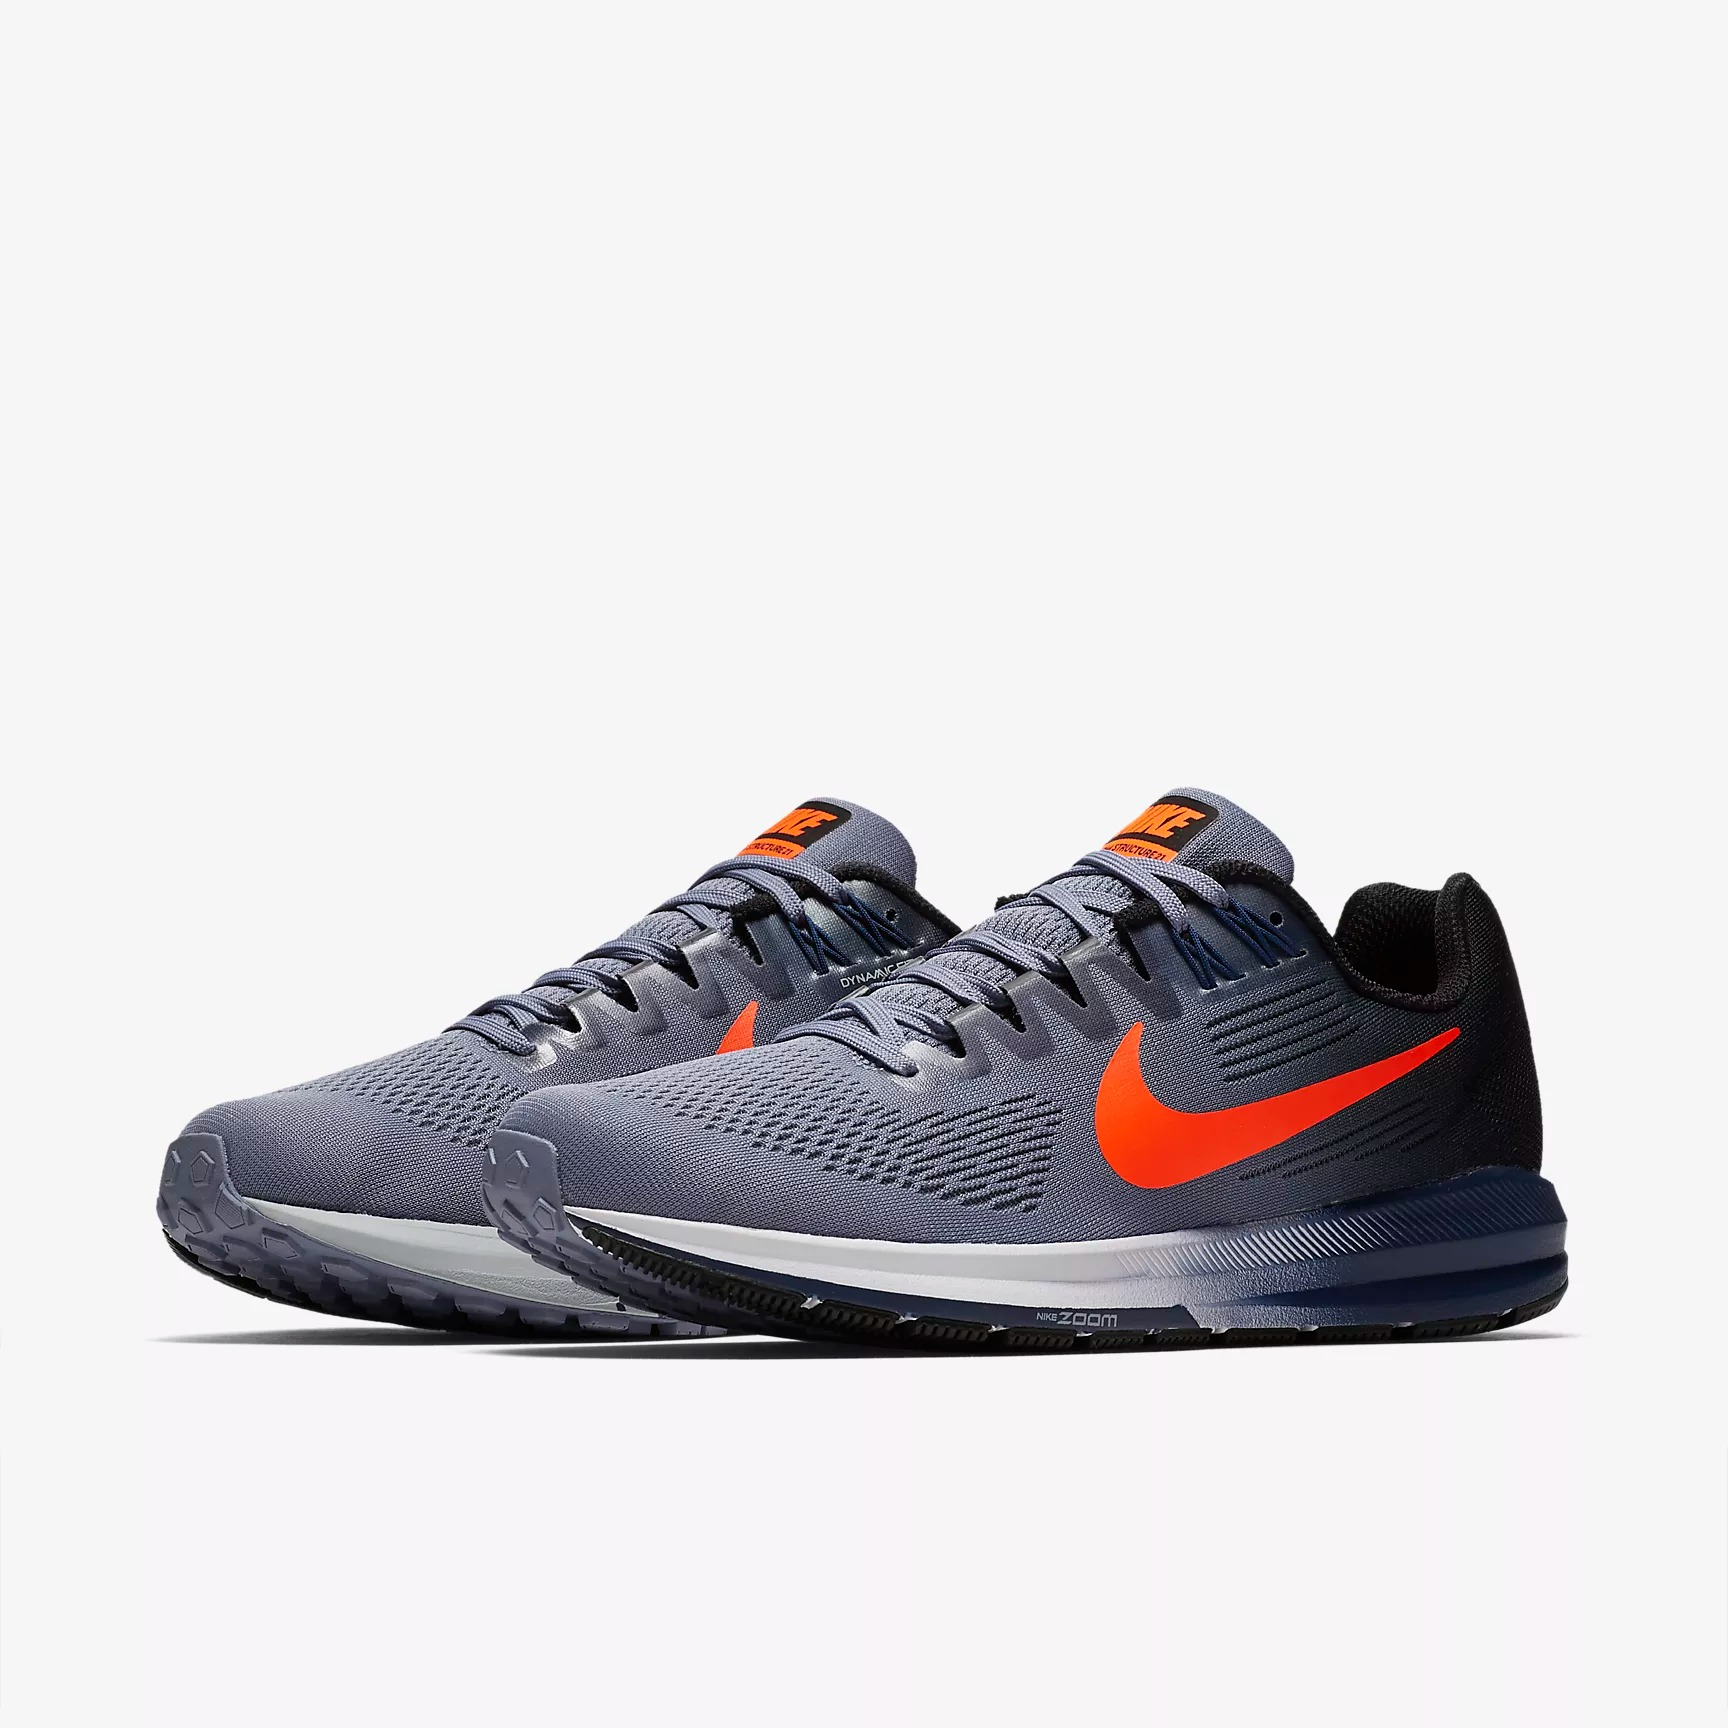 best website d40e4 1959e Nike Air Zoom Structure 21 Men's Running Shoes - SPORT SHOES ...